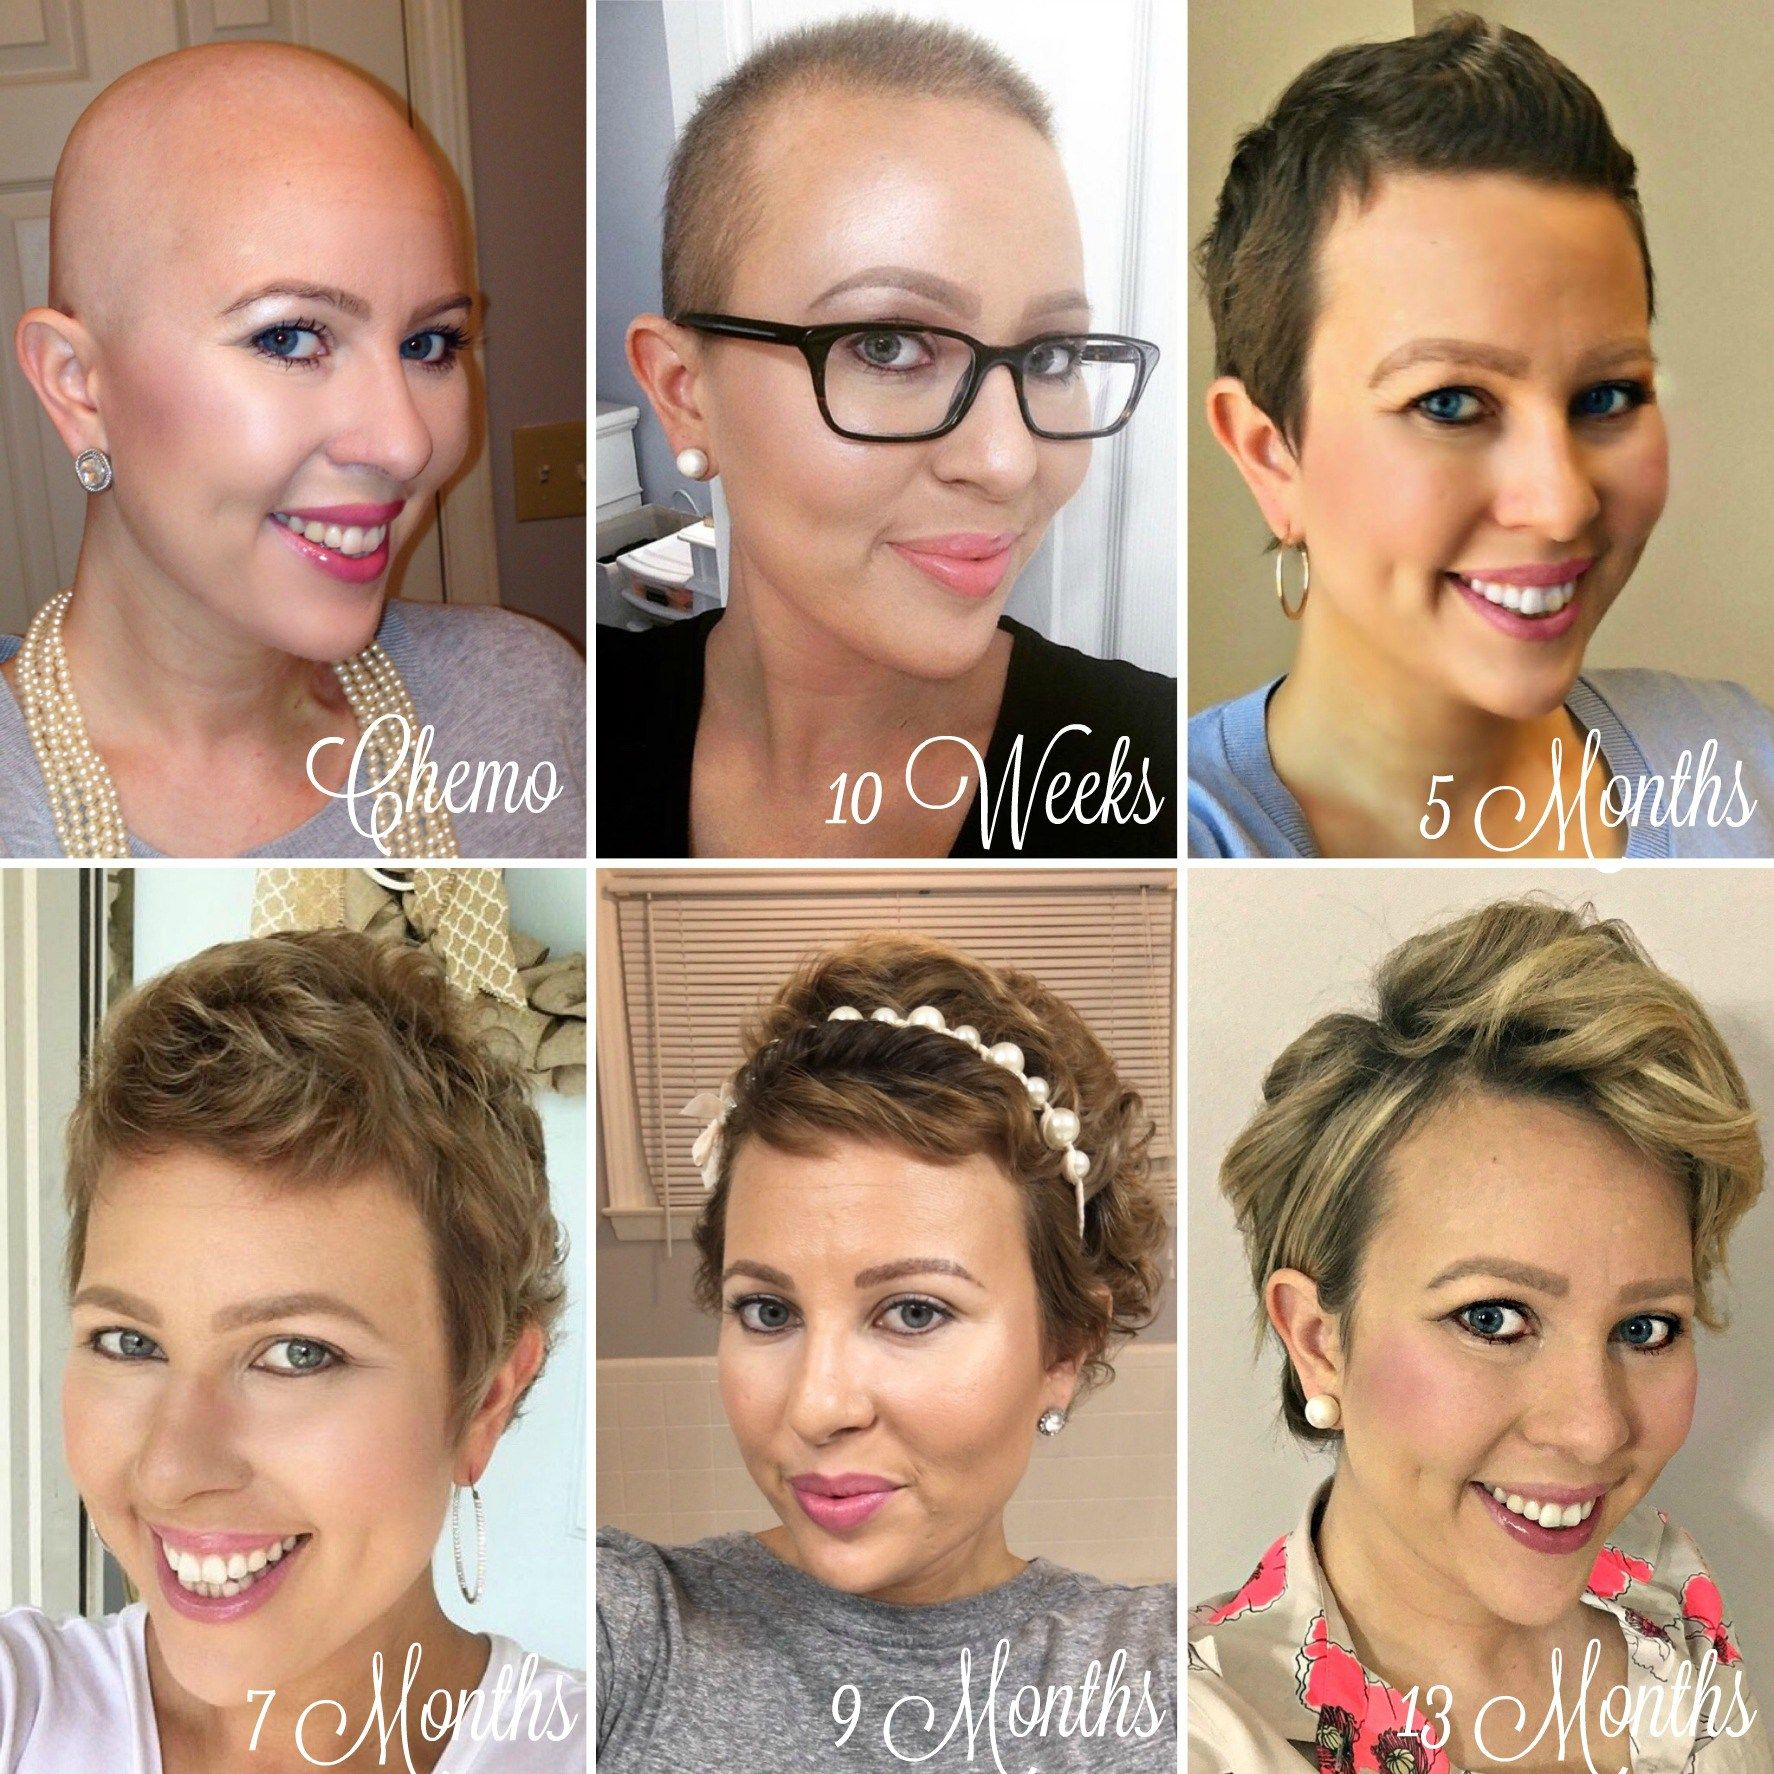 Hair Regrowth, Pixie, Bob, Buzzcut, Curls, Chemo Curls, Short Hair